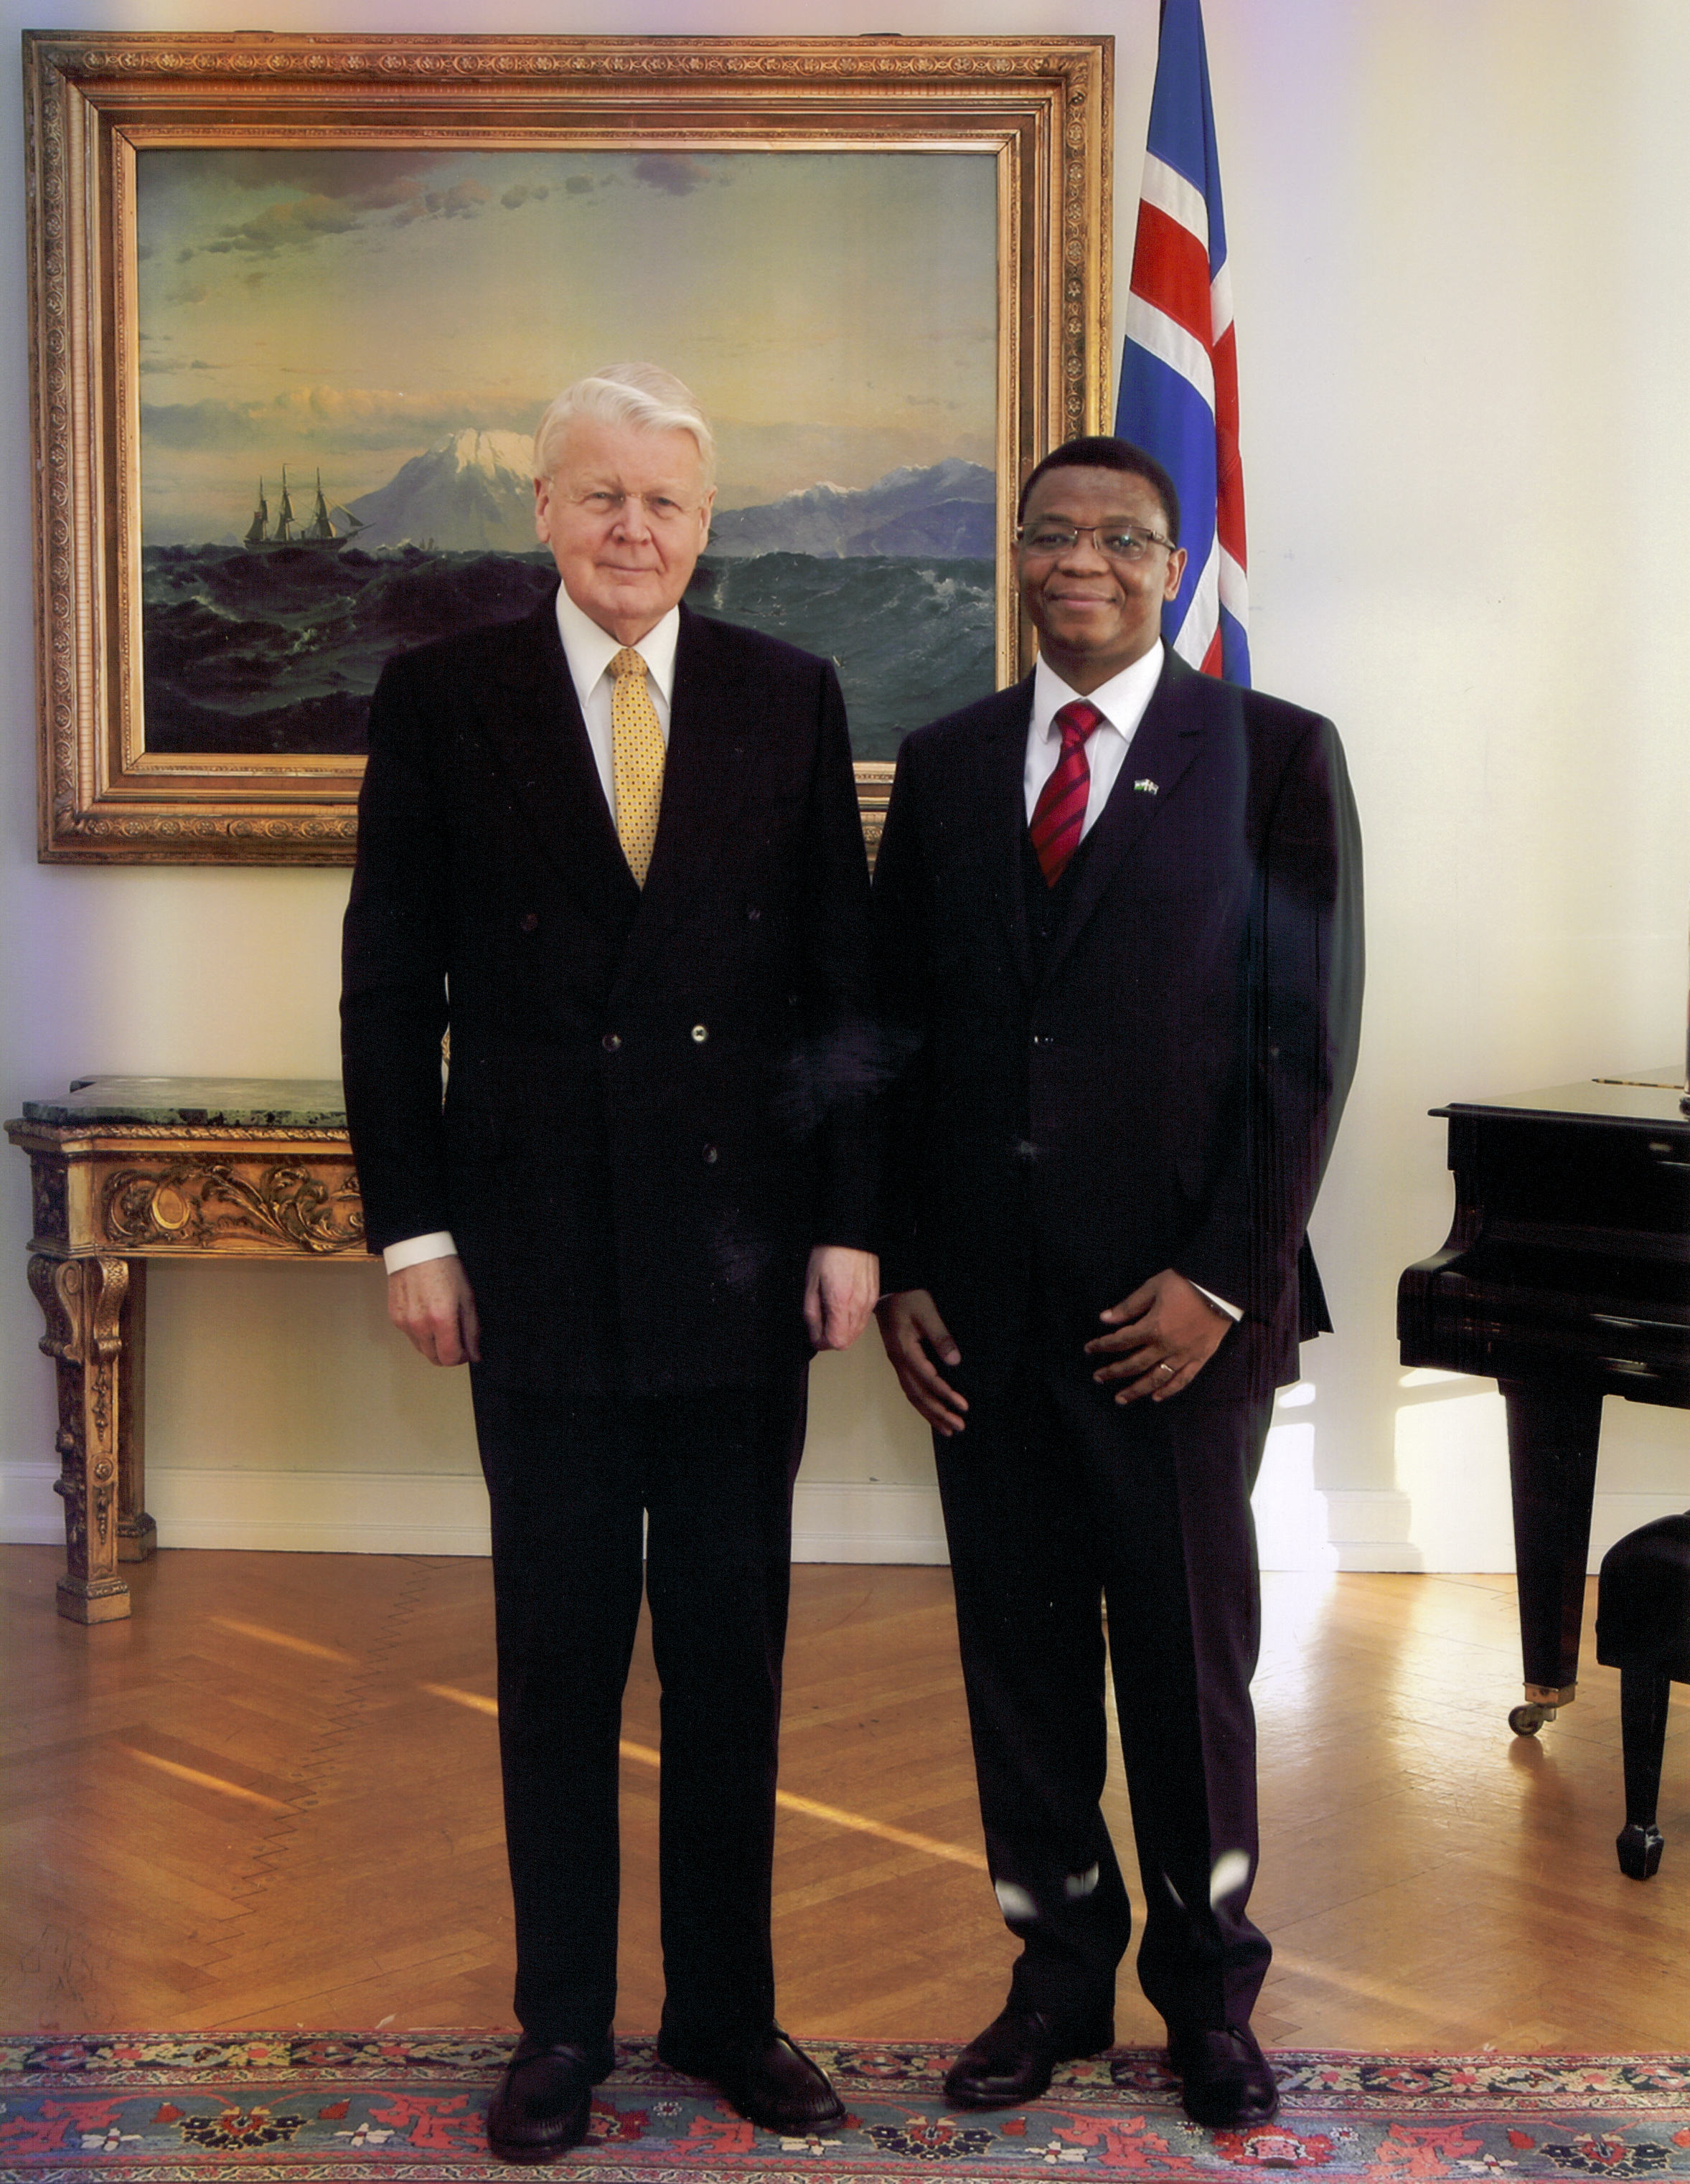 Ambassador with President Olafur Grimsson of Iceland 2